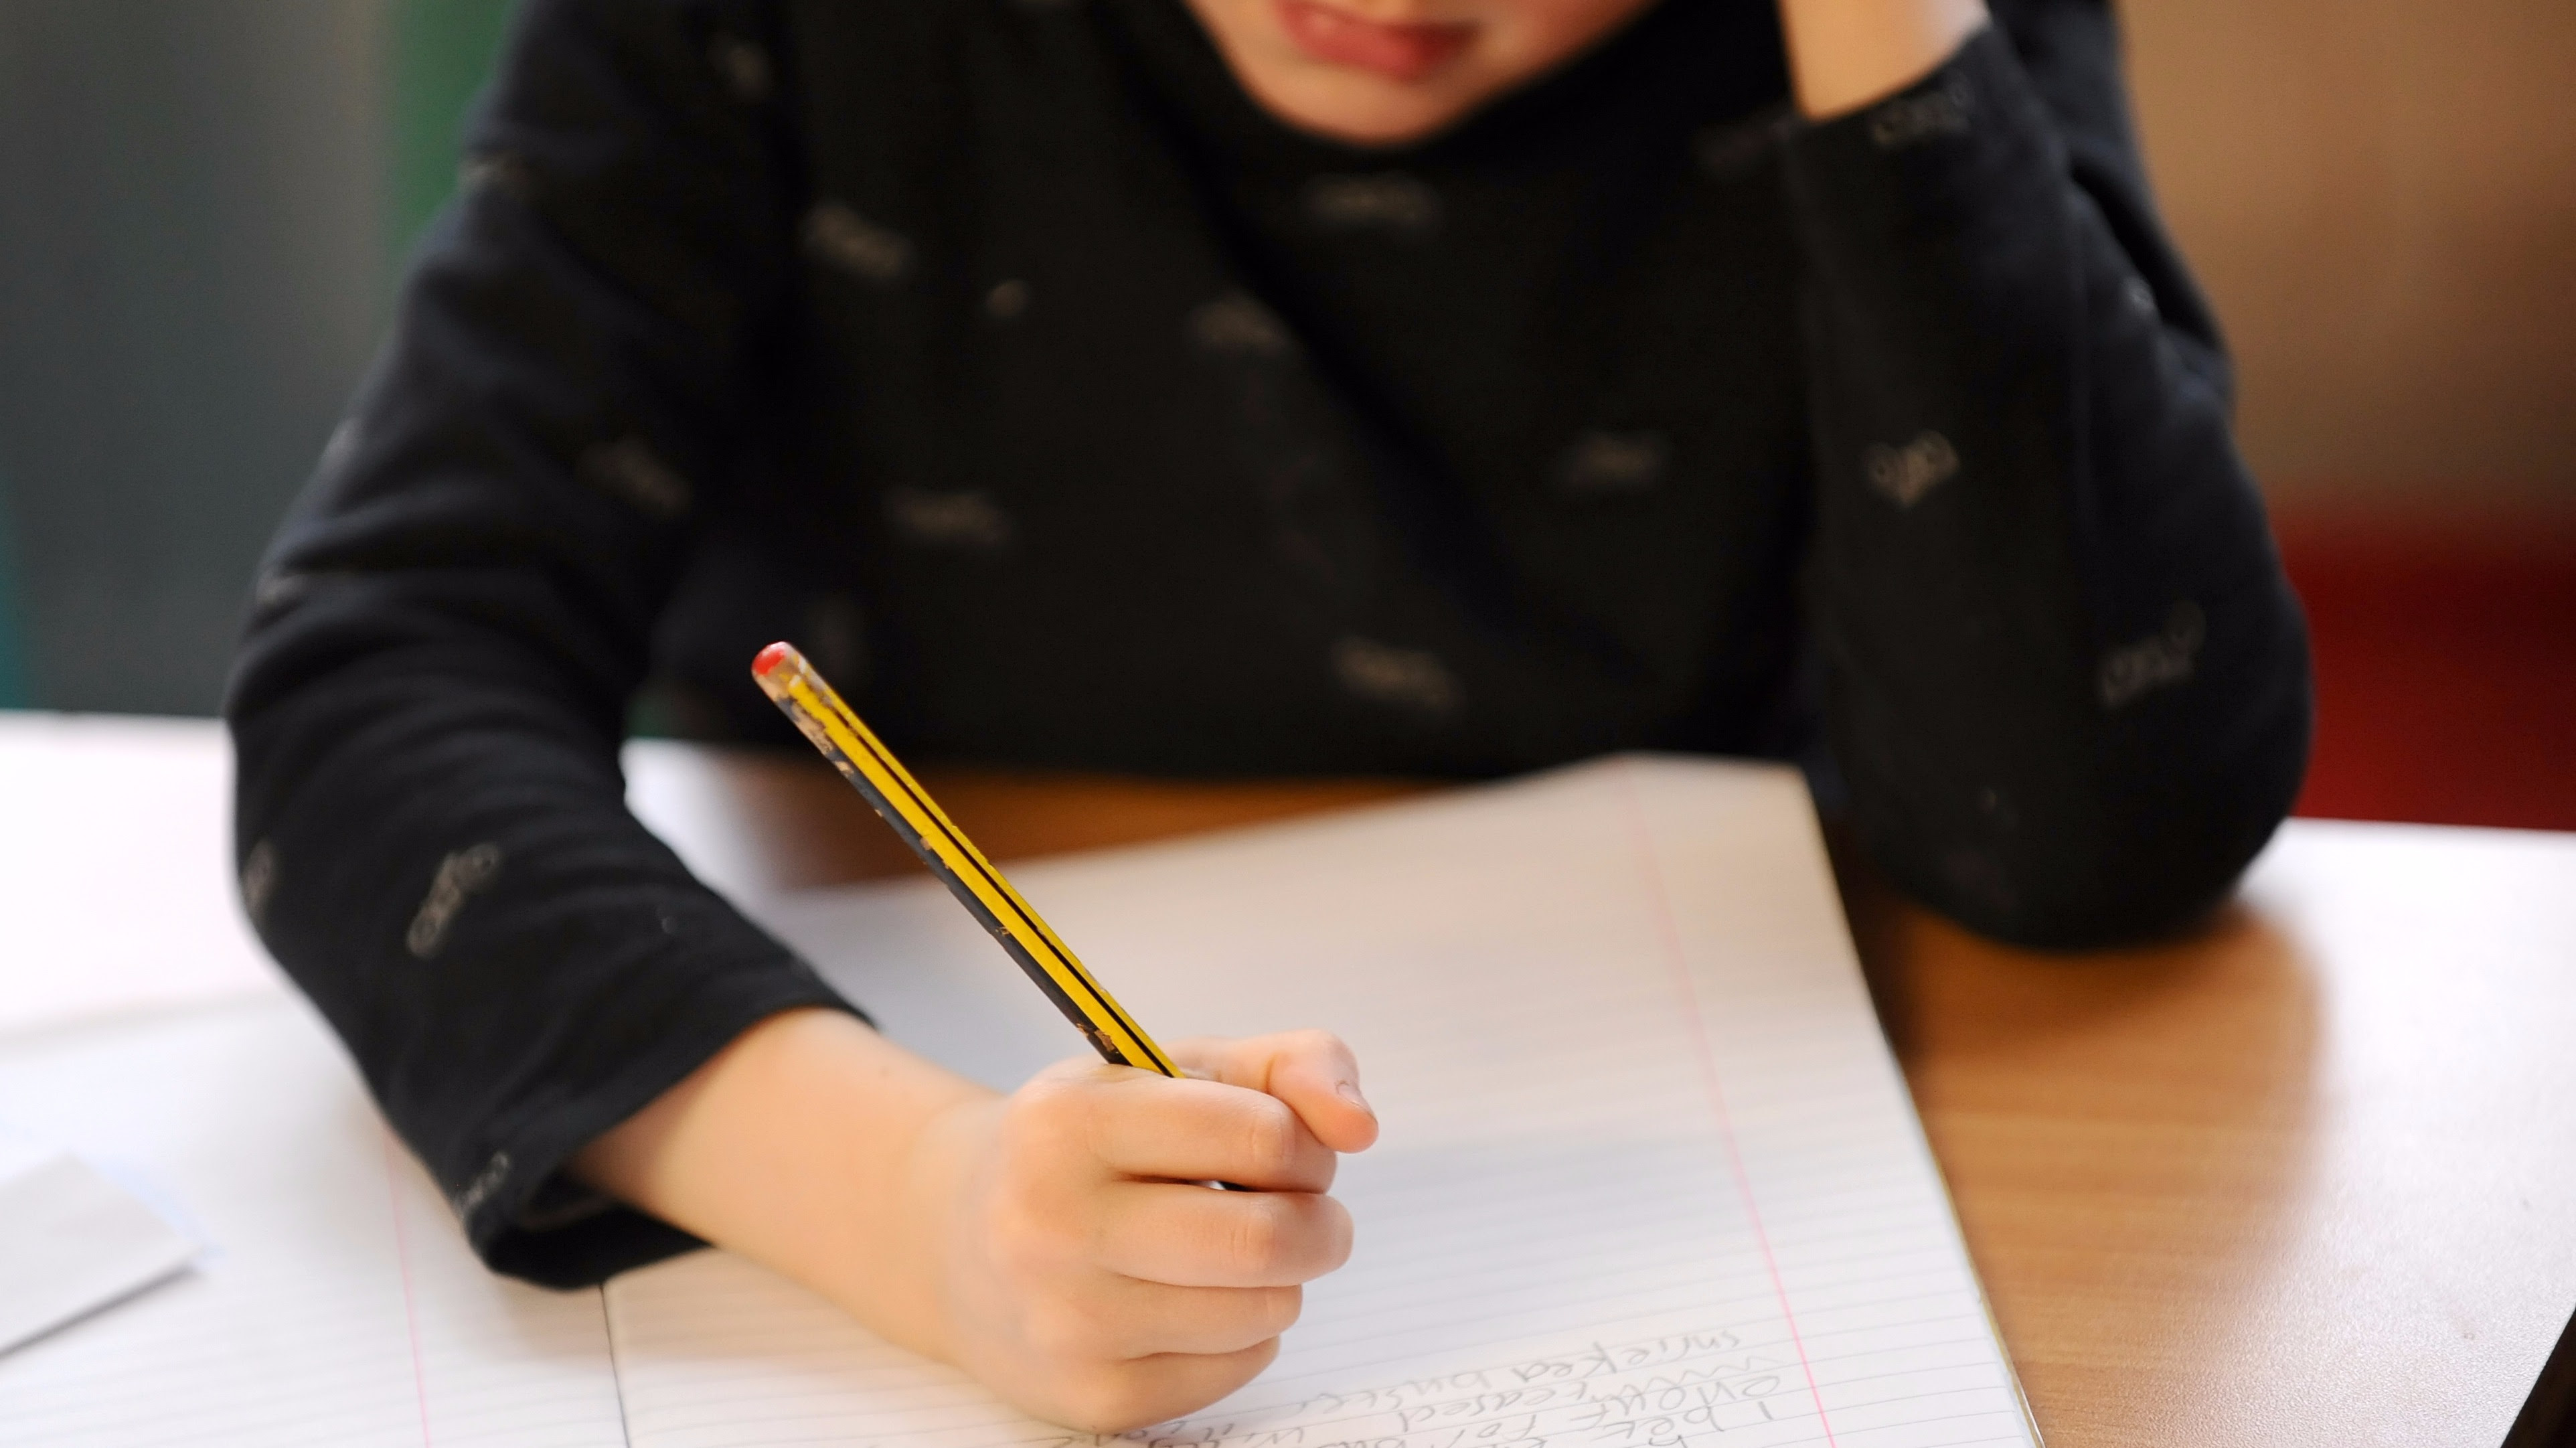 Too tough? Answer these questions from new school tests for primary school pupils - ITV News